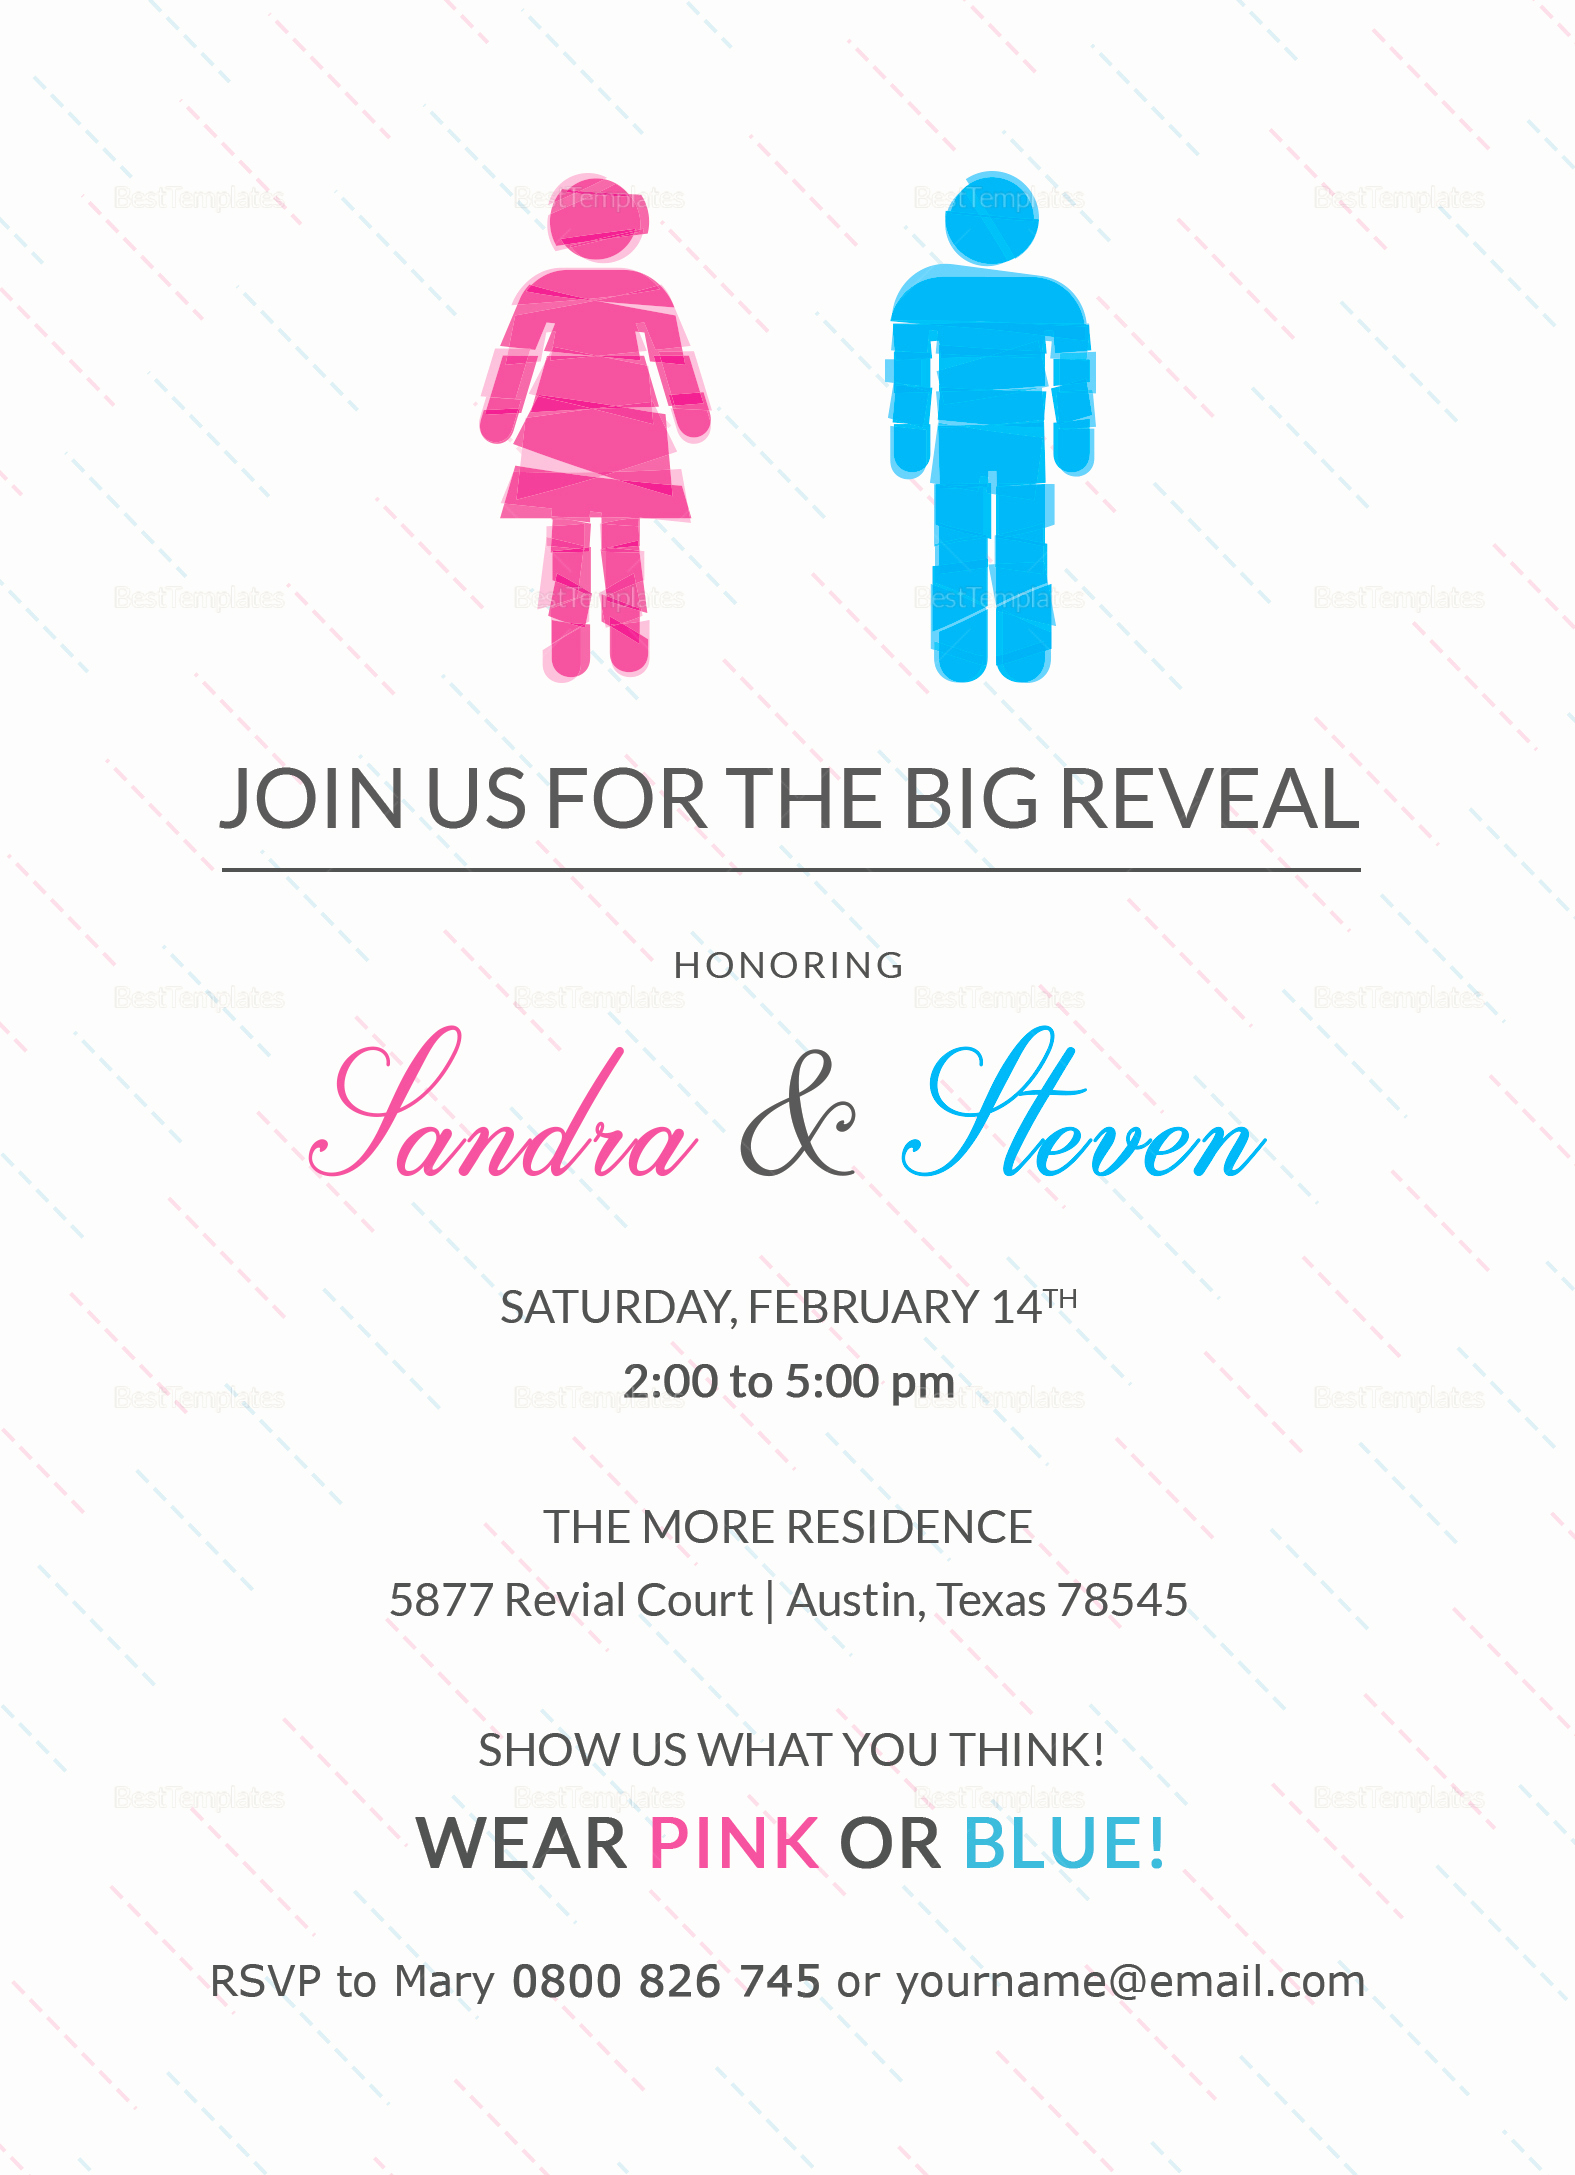 Gender Reveal Invitation Template Lovely Gender Reveal Invitation Design Template In Word Psd